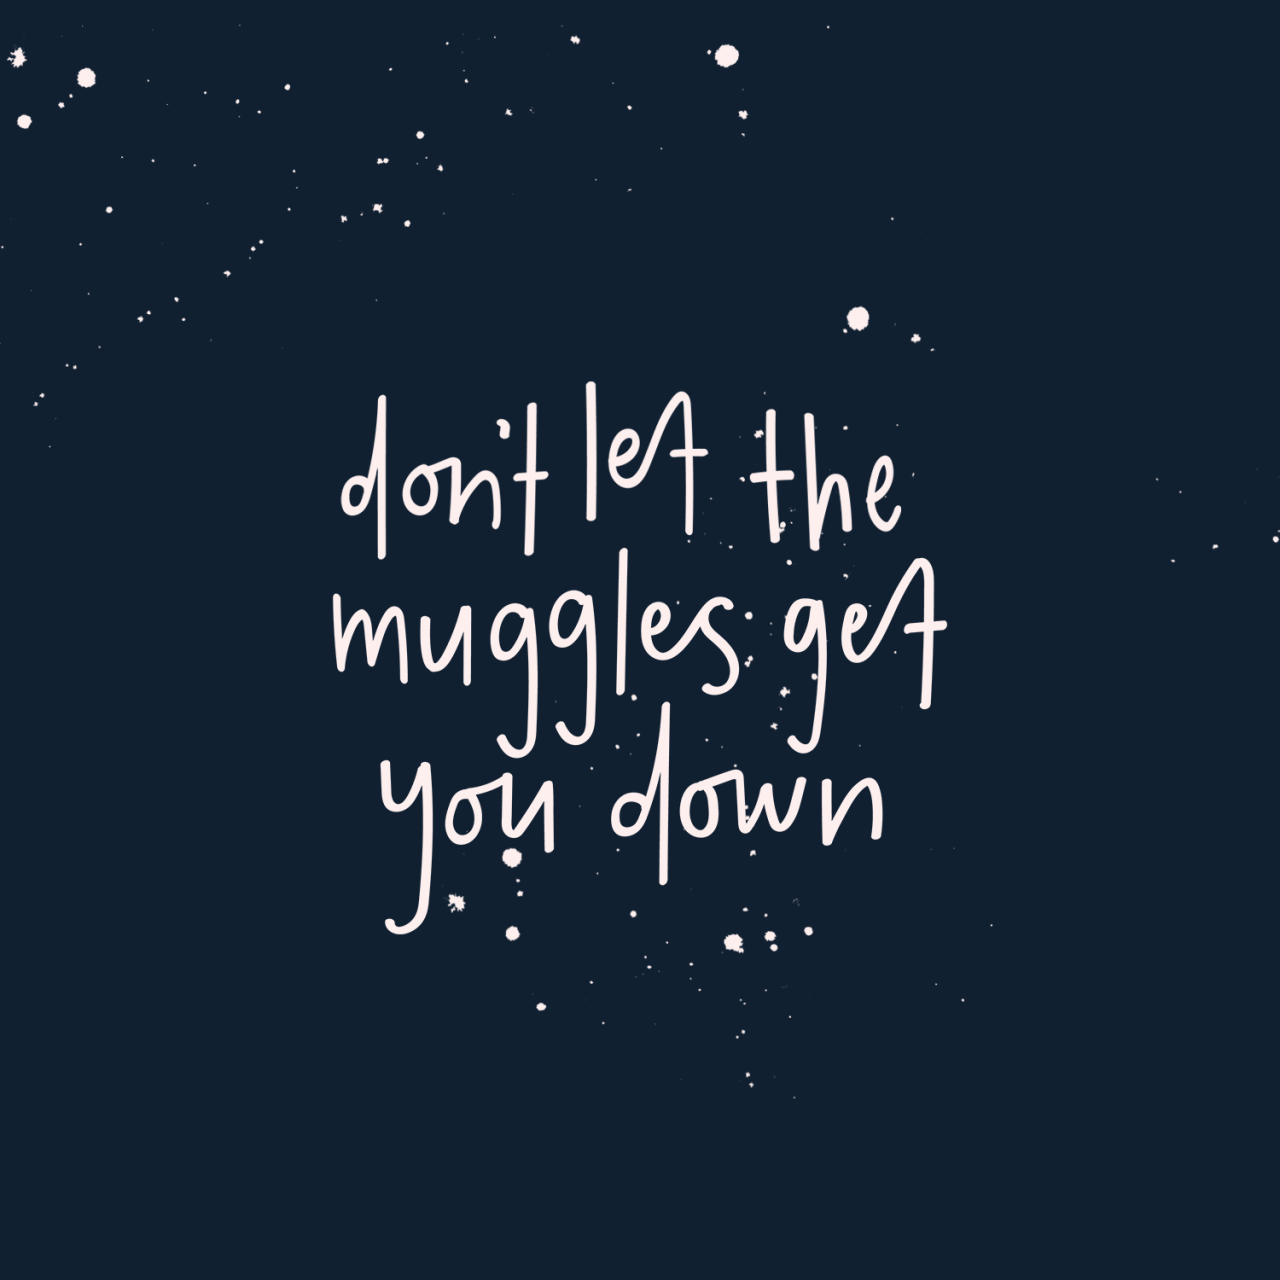 Harry Potter Quote About Friendship Don't Let The Muggles Get You Down  Lettering  Magic  Harry